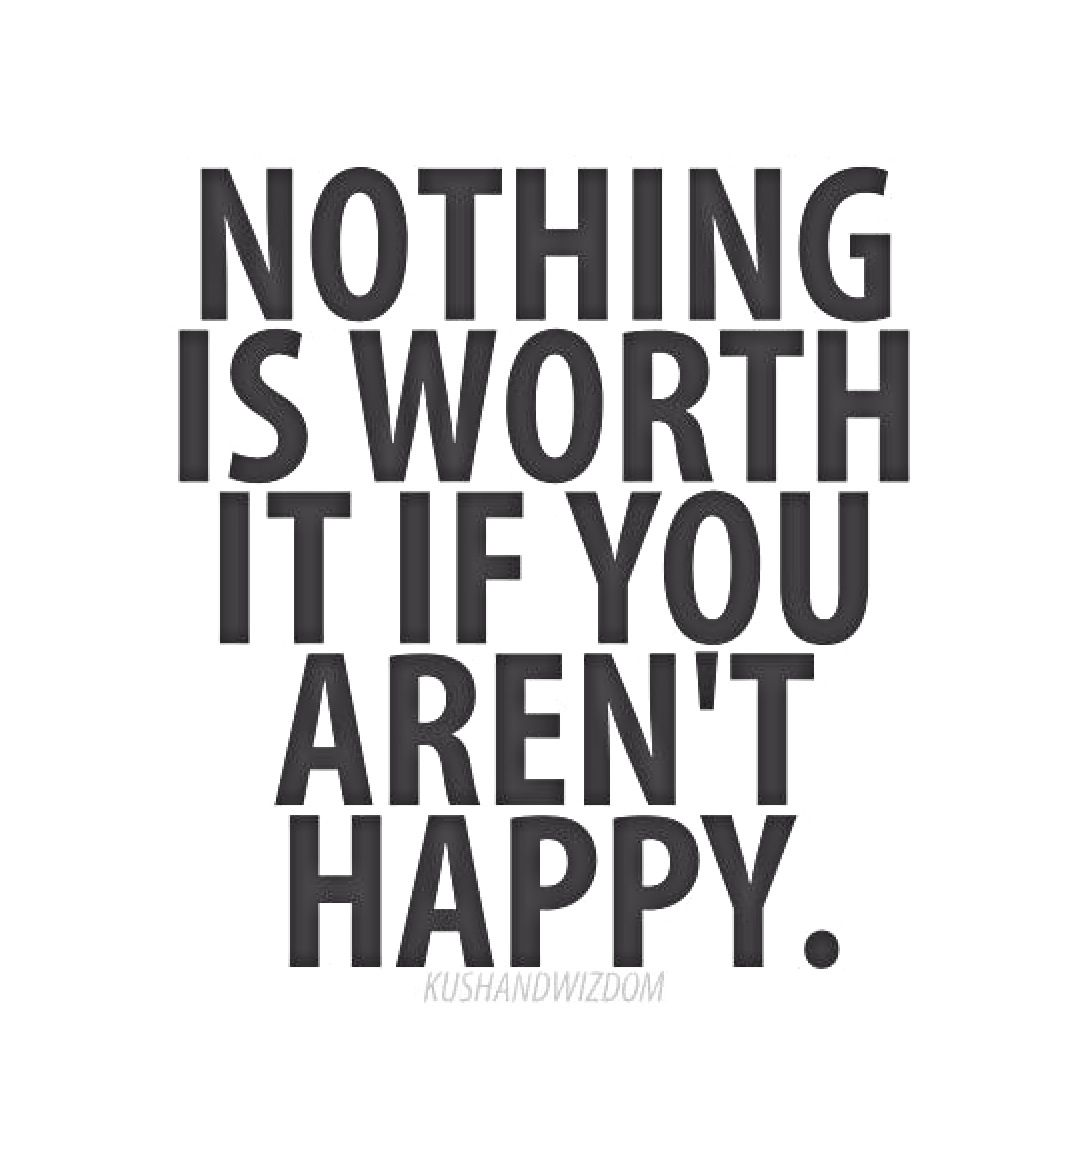 Quotes About Unhappiness: 20 Amazing Quotes That Will Change Your Outlook On Life